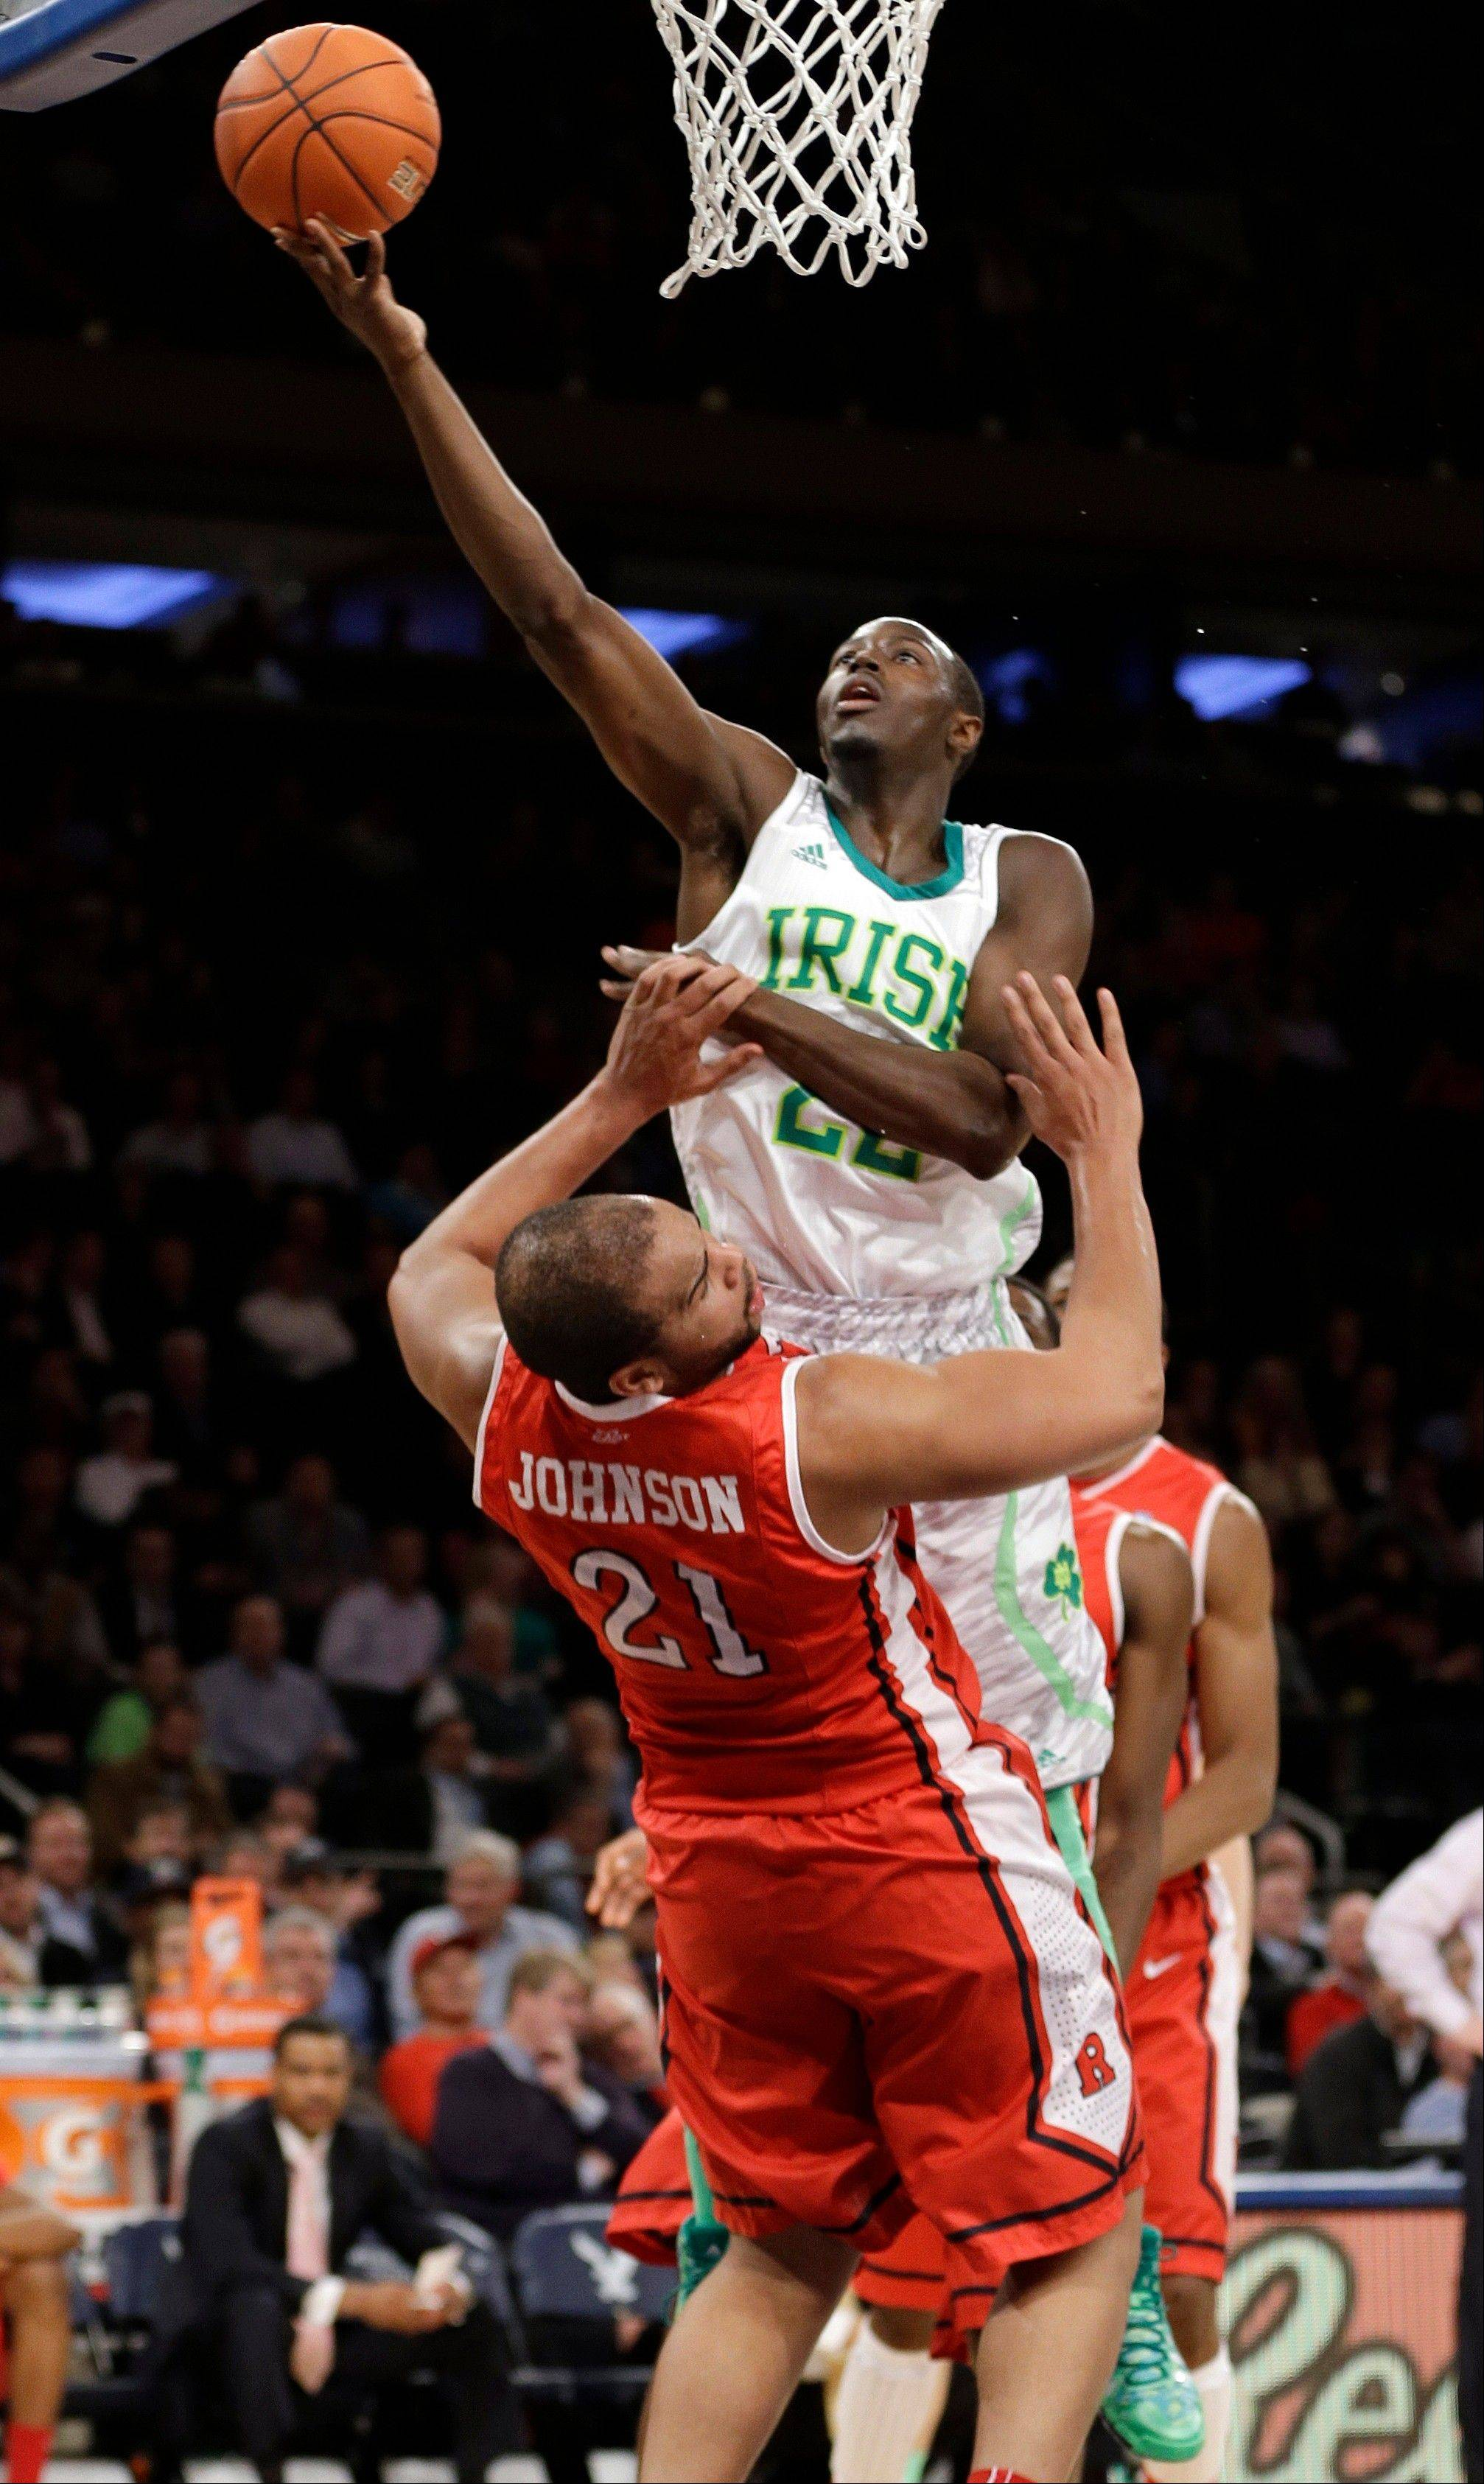 Rutgers� Austin Johnson (21) draws a foul as Notre Dame�s Jerian Grant (22) attempts to score Wednesday night in New York. Notre Dame beat Rutgers 69-61 in Big East tourney play.